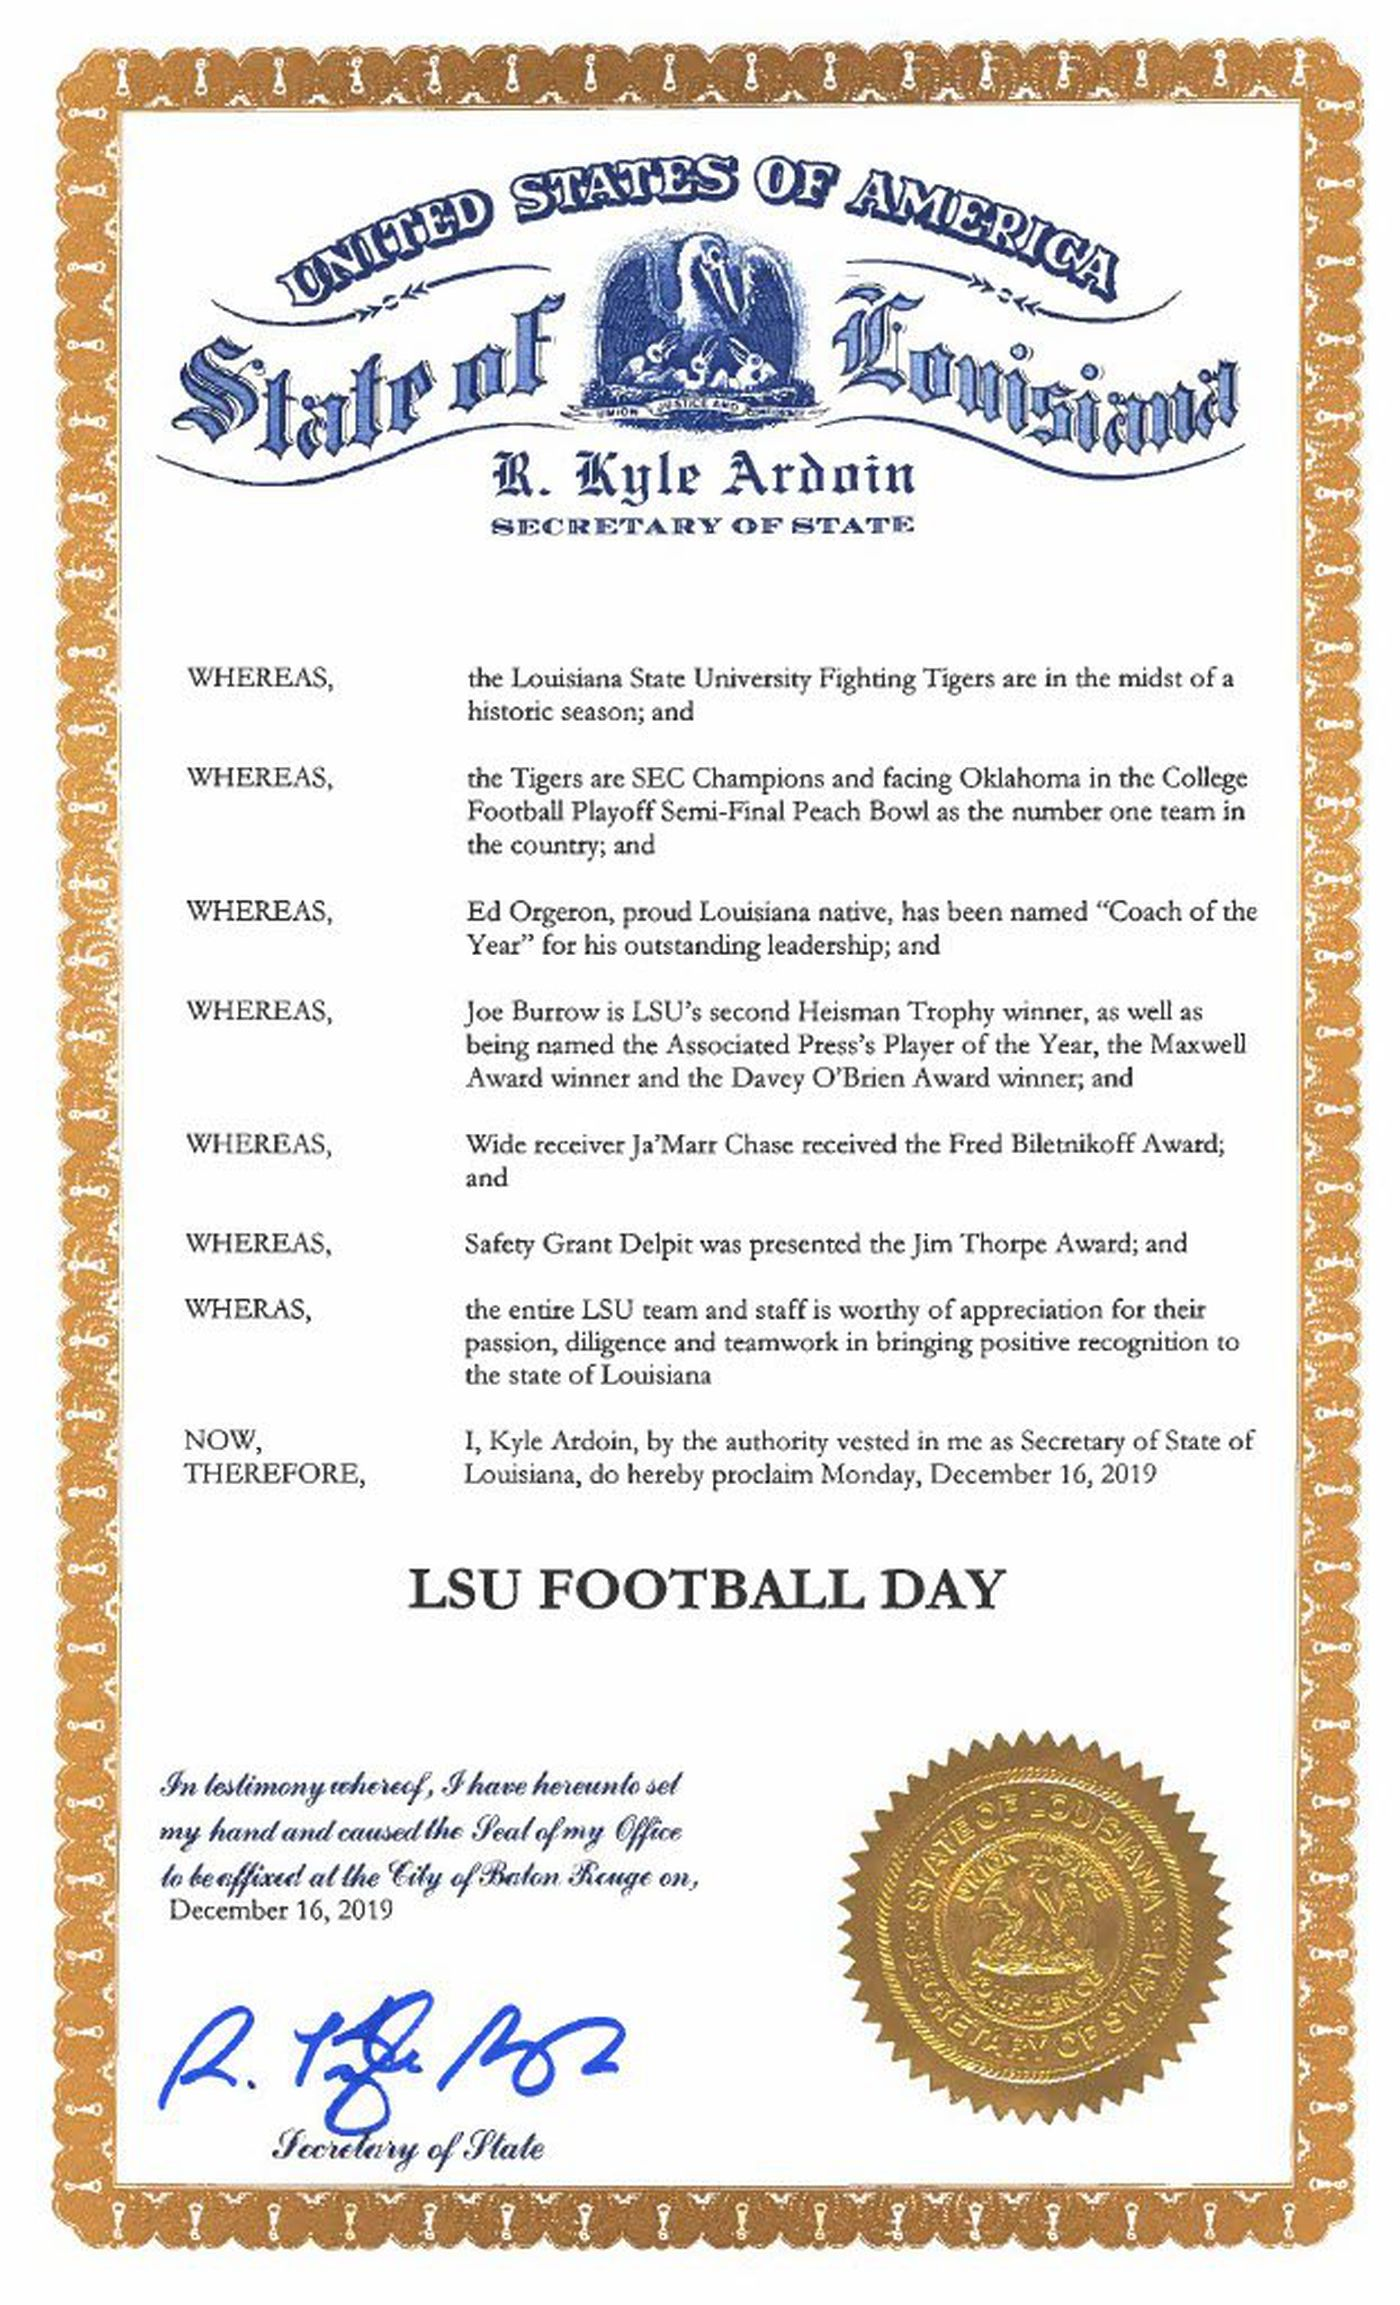 "A copy of the proclamation signed by Louisiana Secretary of State Kyle Ardoin lists the Tigers winning the SEC Championship game, Coach Ed Orgeron being named ""Coach of the Year,"" Joe Burrow being named the second Heisman winner in LSU's history, wide receiver Ja'marr Chase receiving the Fred Biletnikoff Award, and safety Grant Delpit being presented with the Jim Thorpe Award as reasons he dedicated the day for celebrating the team's success."